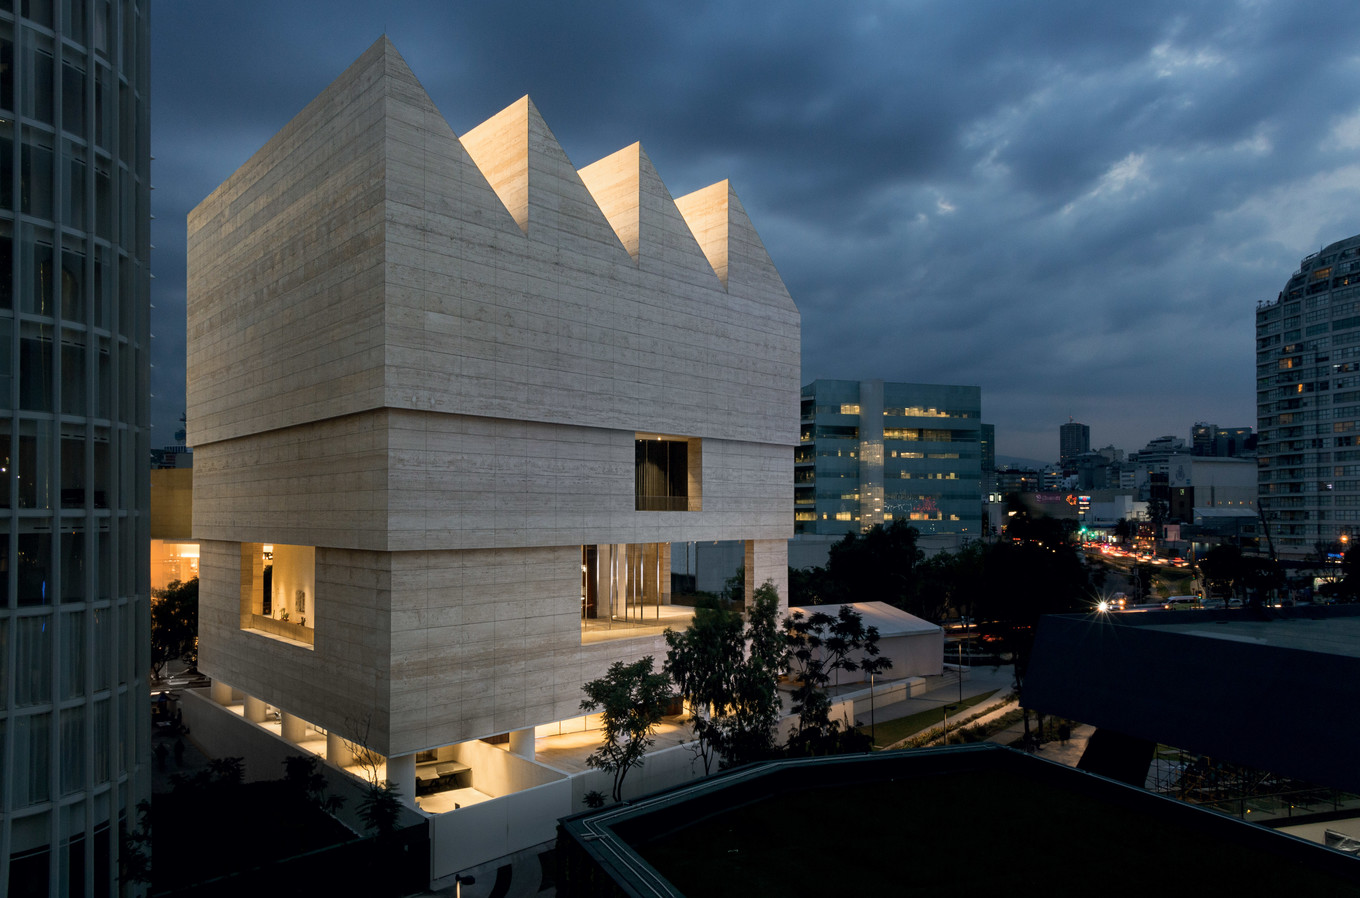 Zumtobel-Museo-Jumex-Mexico-City-Mexico-David-Chipperfield-Architects-Frontal-FACTOR_201606221840.jpg